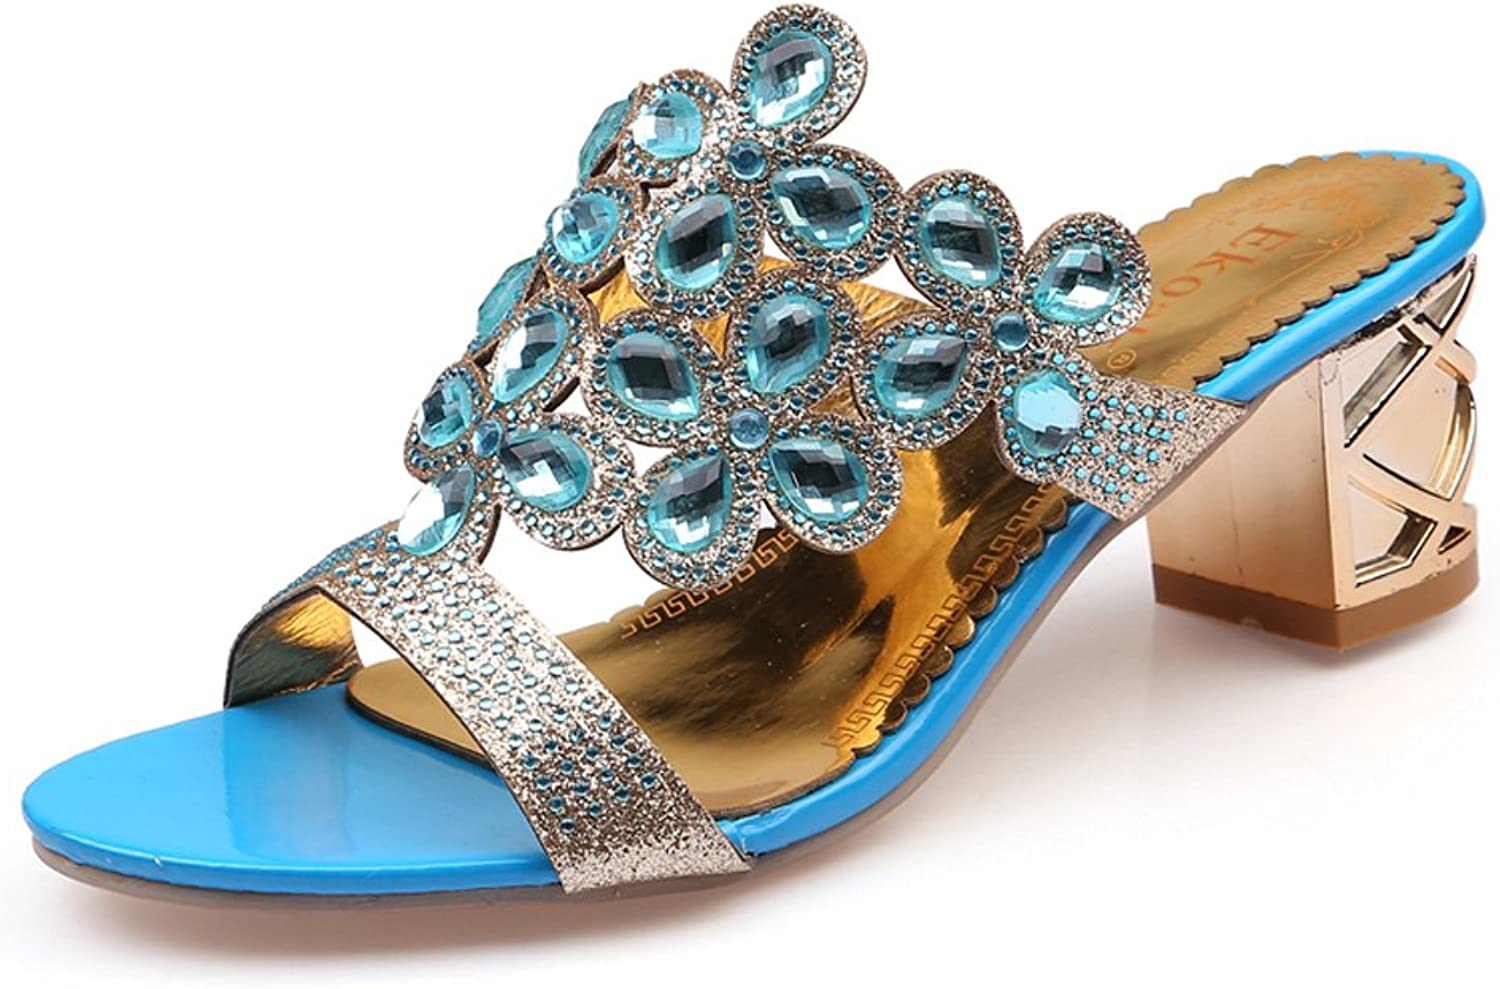 Genepeg Womens Sandals Summer Fashion Big Rhinestone Cut-Outs High Heel Party shoes Sky bluee